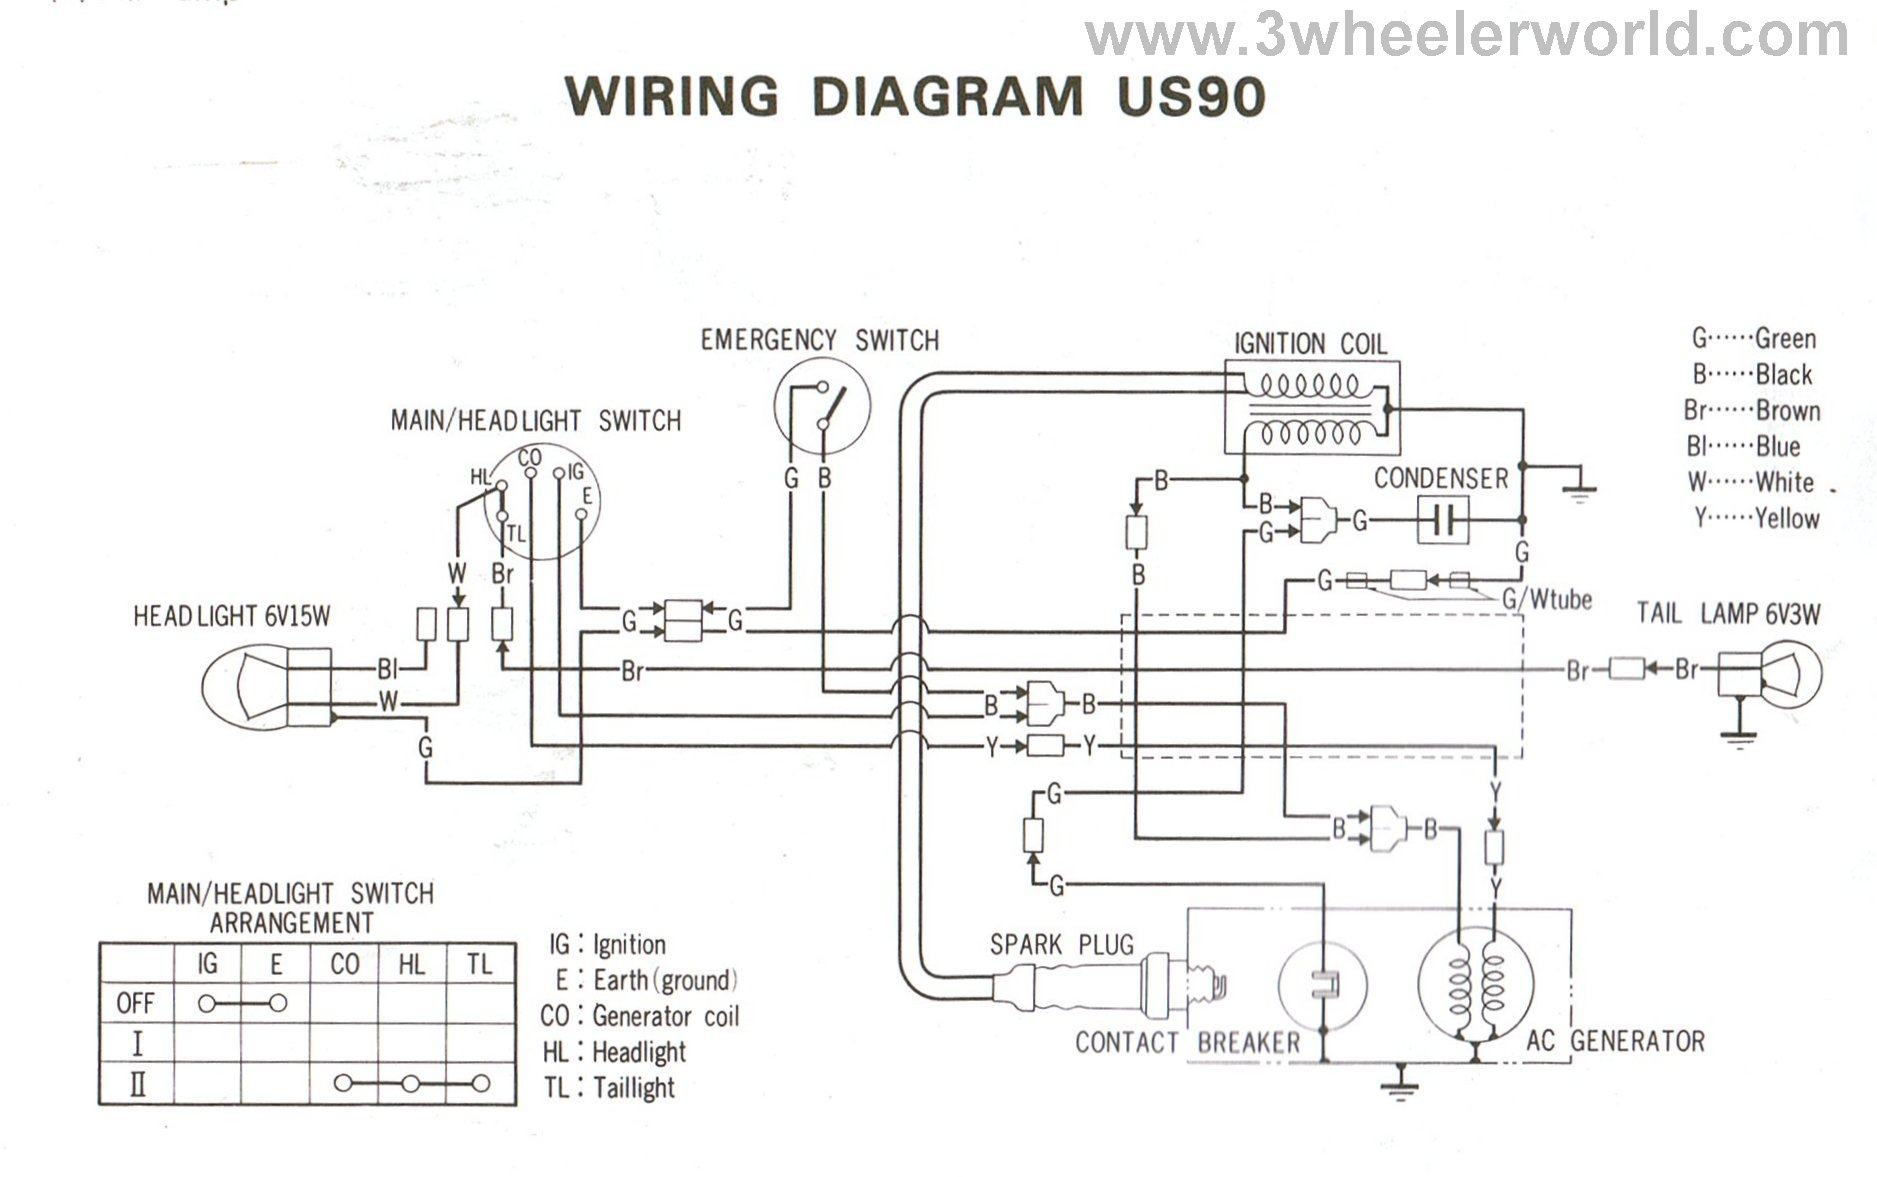 3 Wheeler World Tech Help Honda Wiring Diagrams 1977 Evinrude Diagram Free Picture Schematic Us90 1970 Thru 1973 Atc90 1974 1978